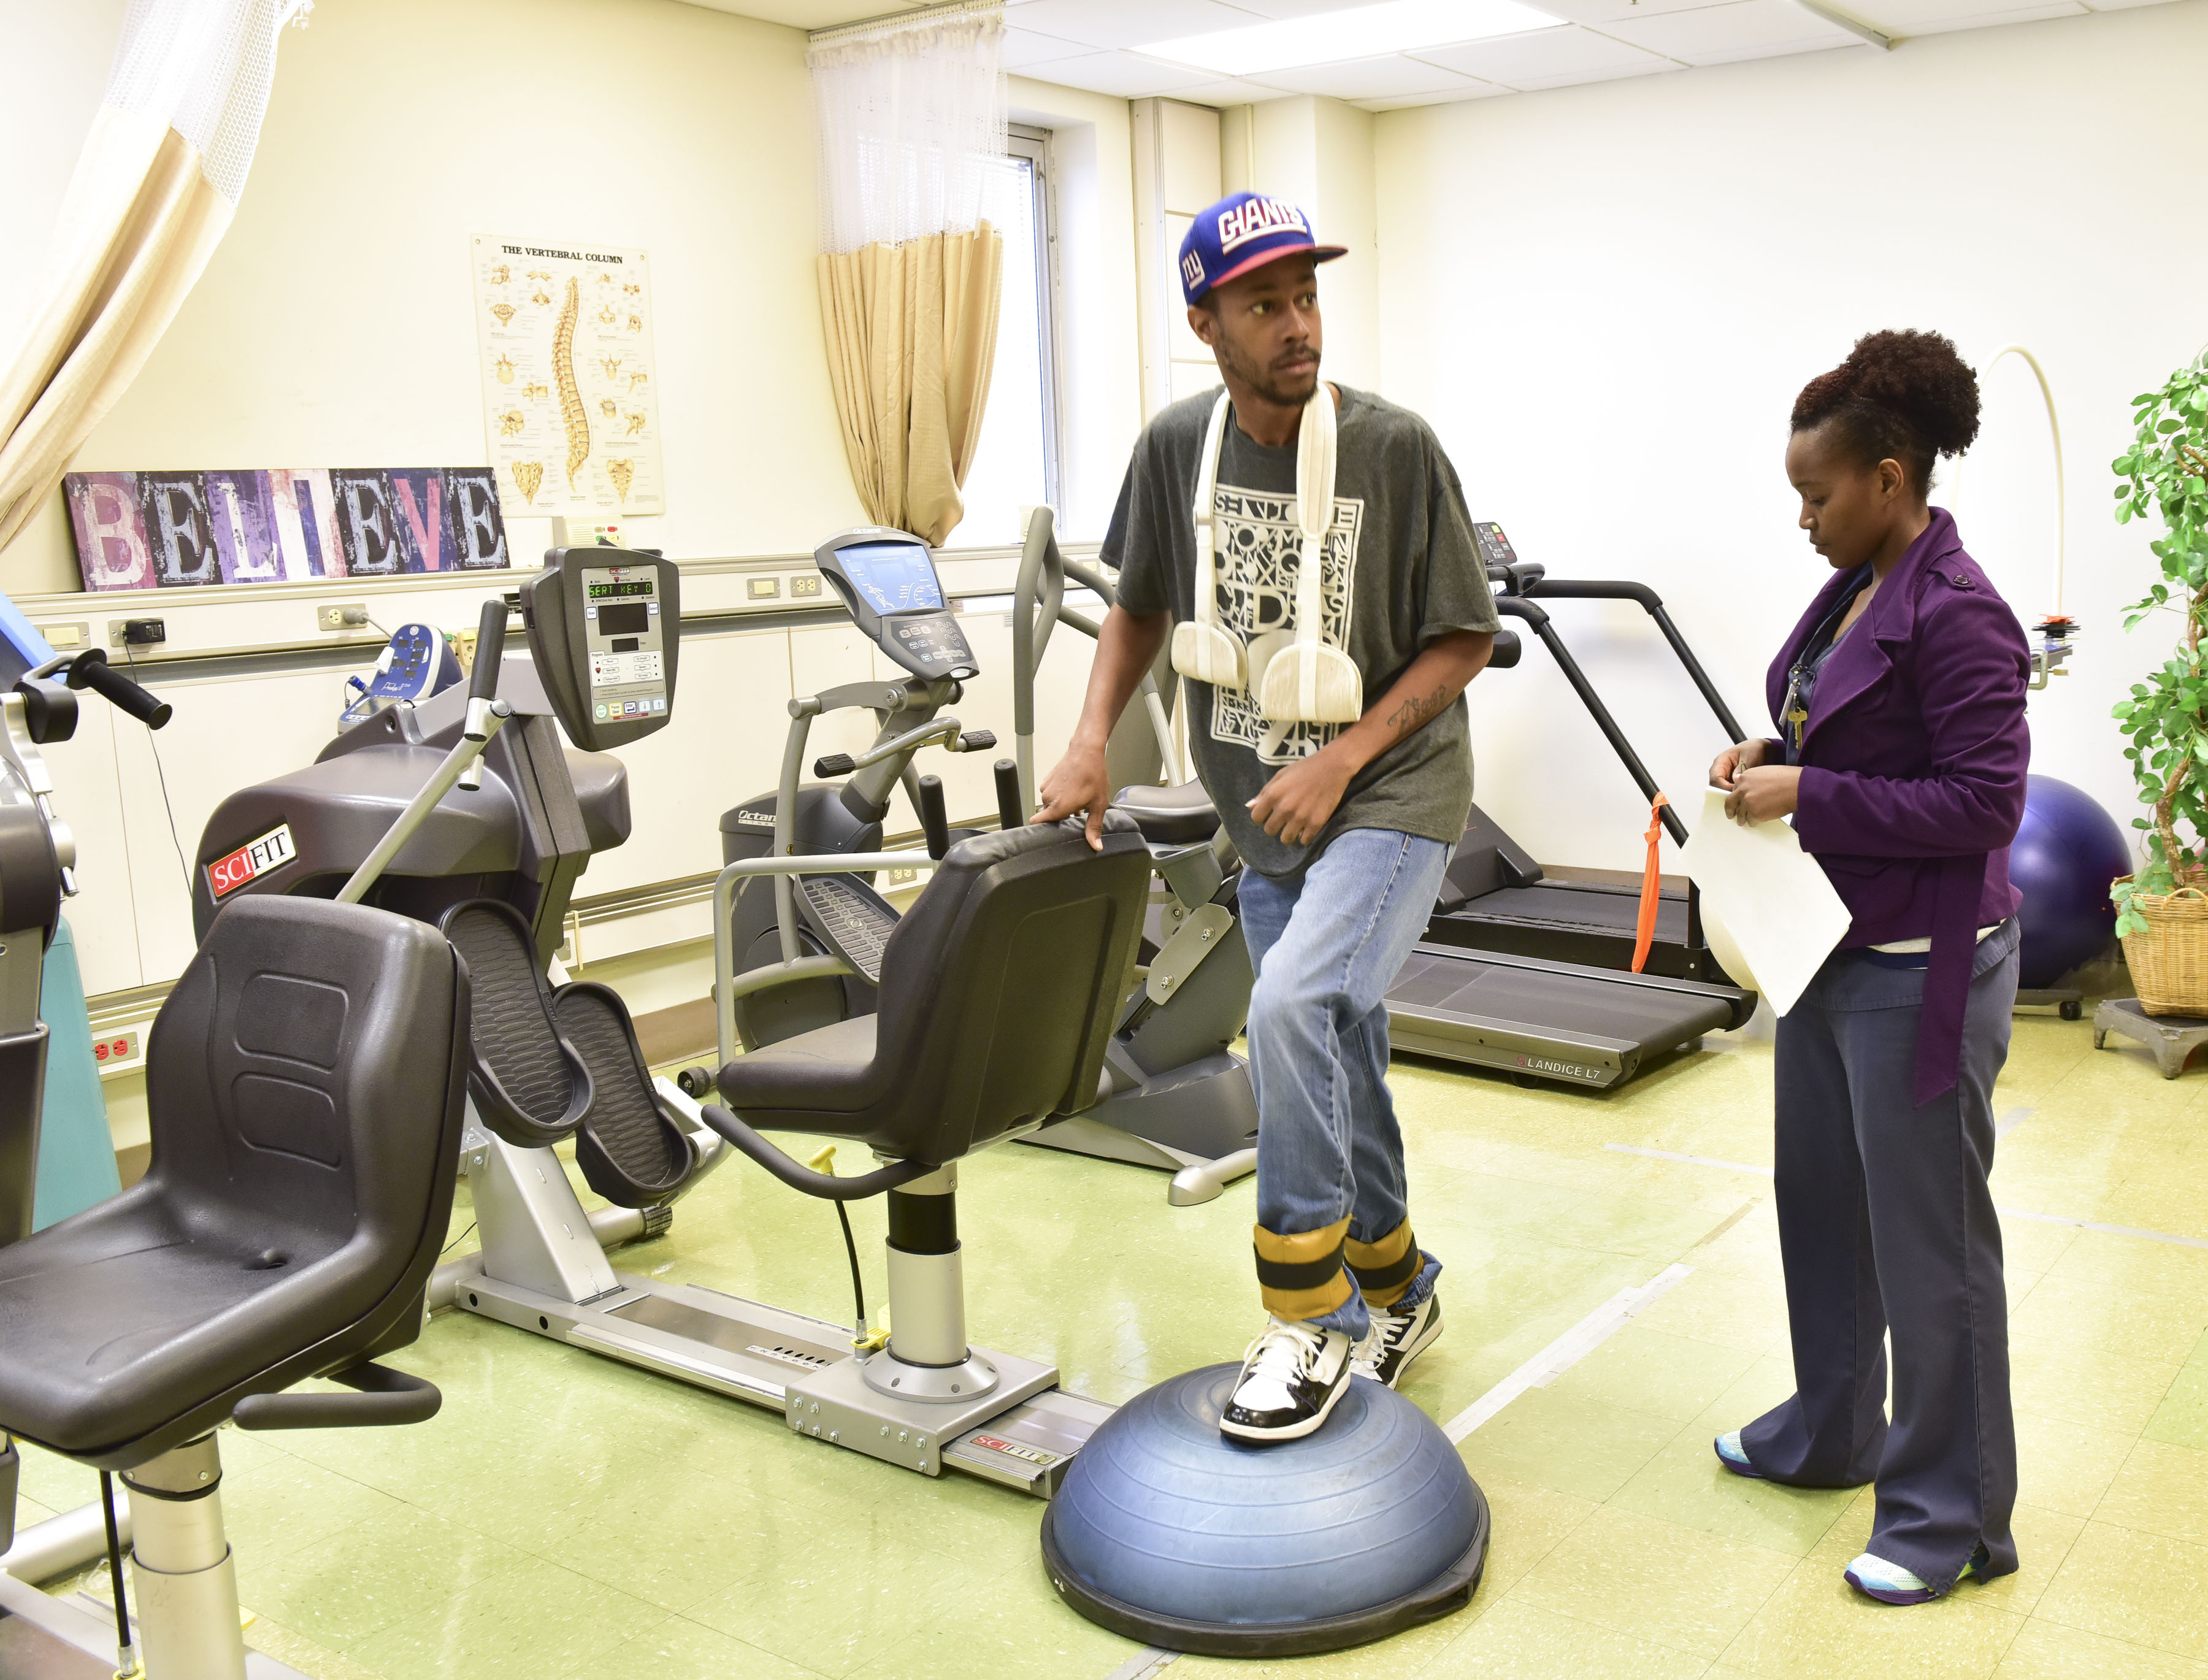 Ronald Mayfield was involved in a motorcycle accident and is going through physical therapy at Cooper Green with Lilian Waweru, P.T.A. (physical therapy assistant). (Frank Couch, The Birmingham Times)